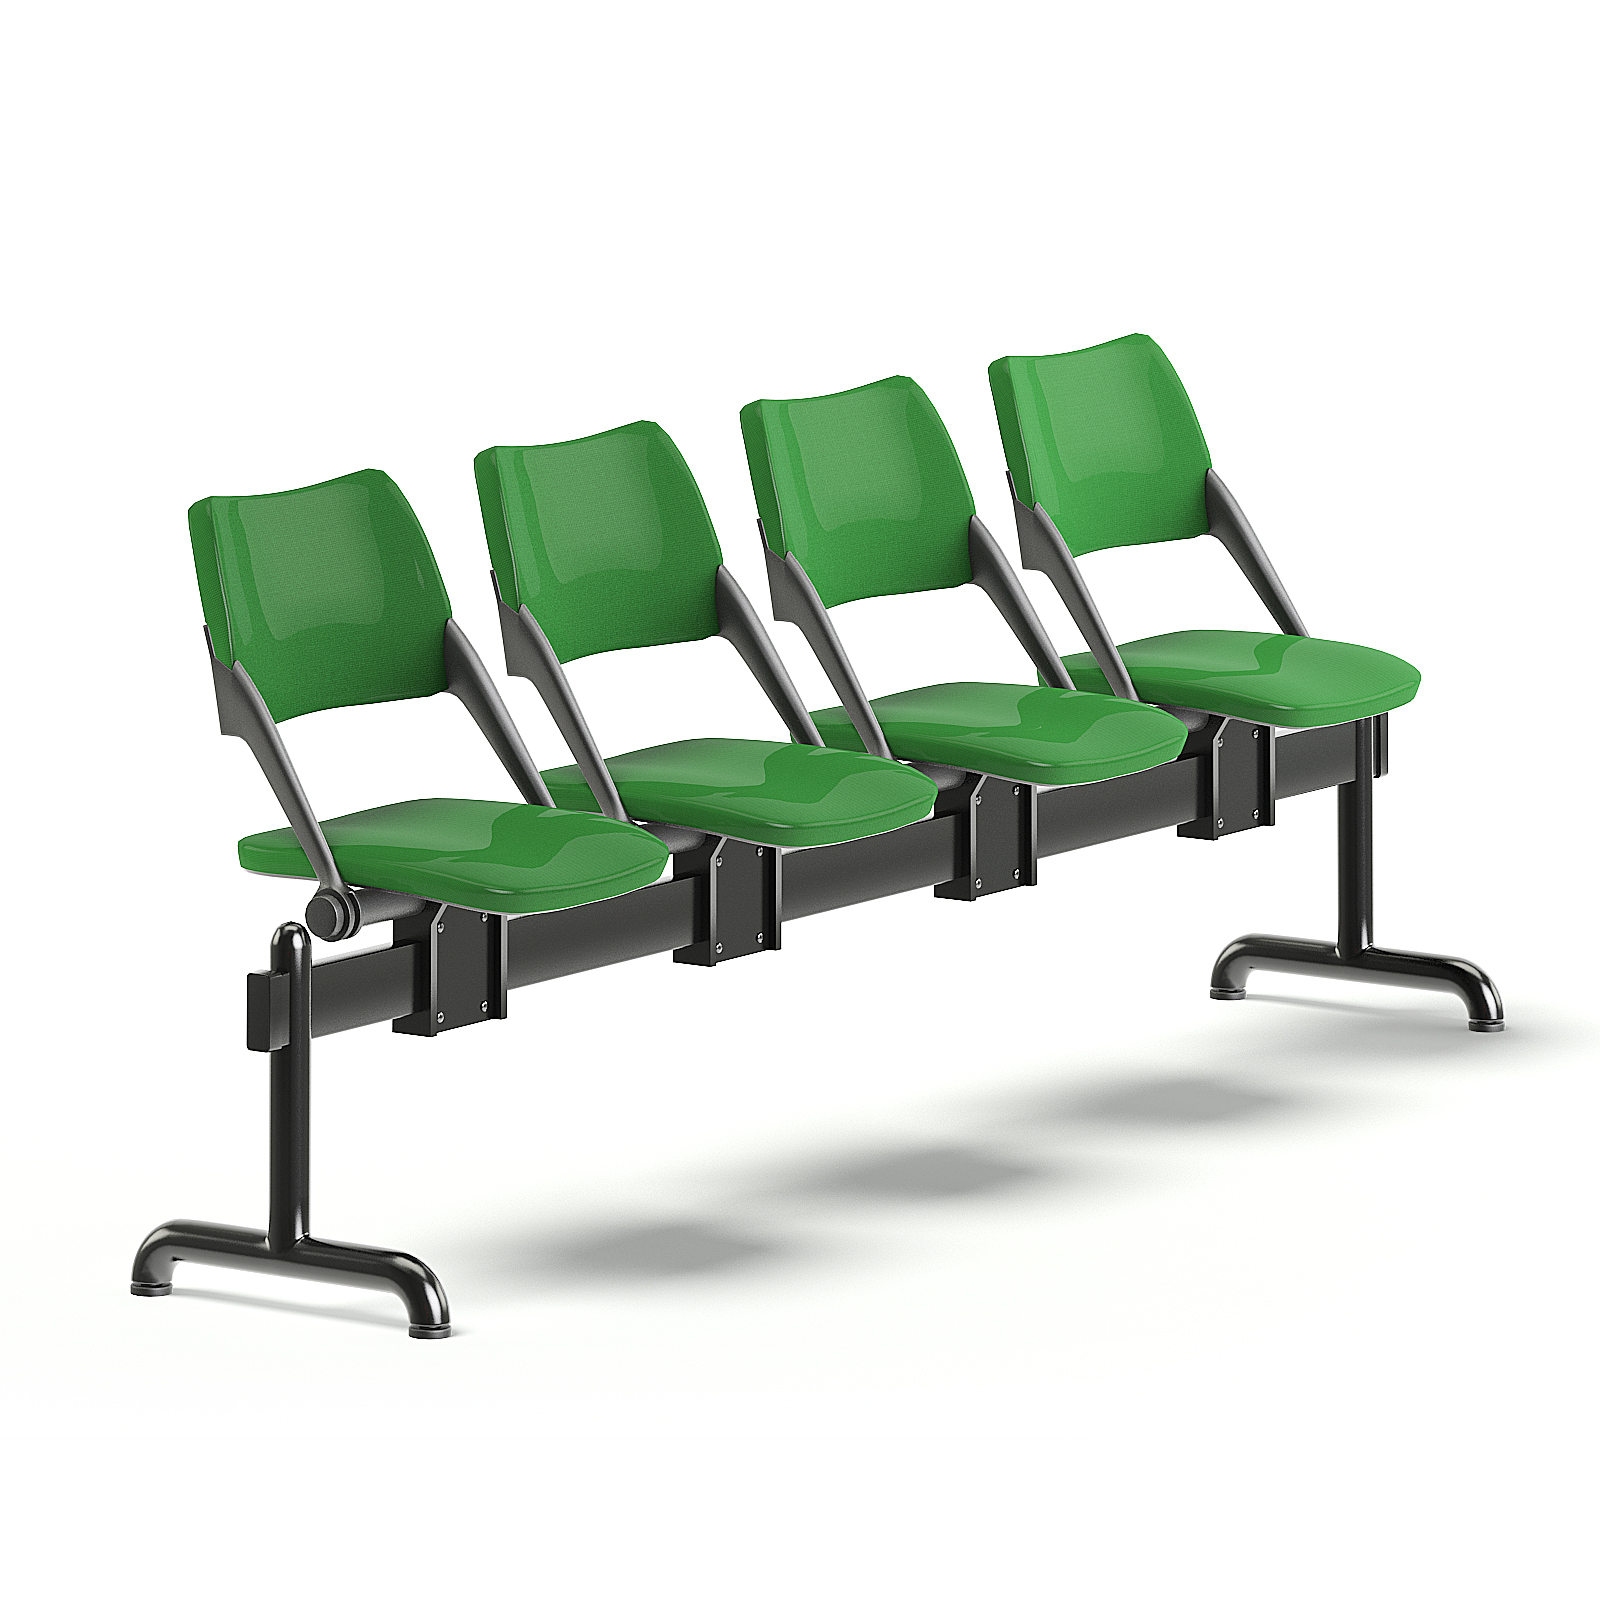 Green Waiting Chairs 6D Model